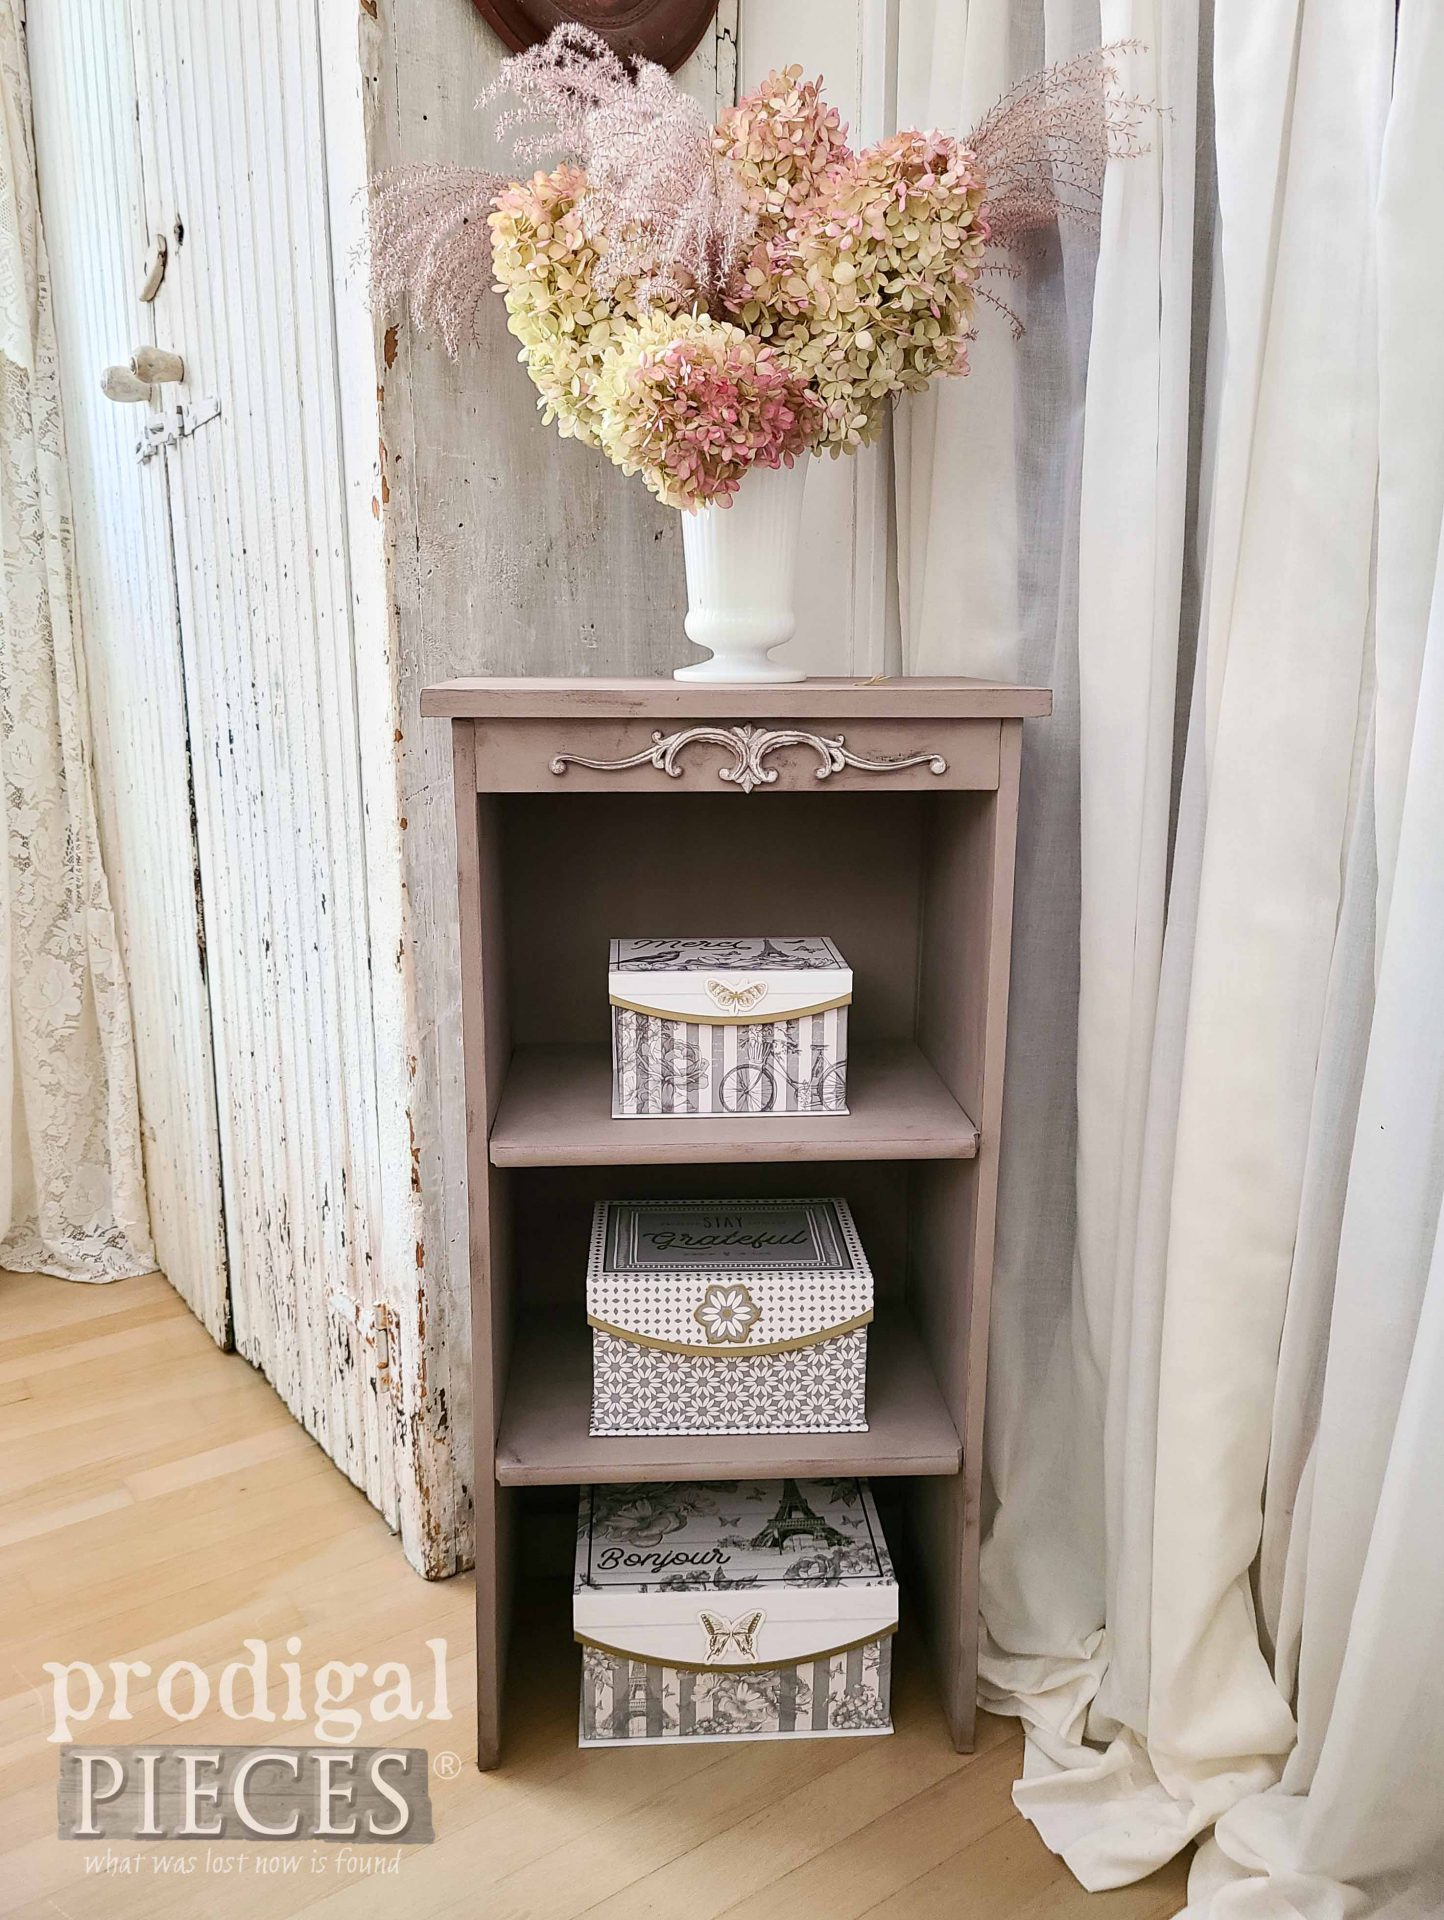 Vintage Style Shabby Chic Cabinet with Storage Boxes by Larissa of Prodigal Pieces | prodigalpieces.com #prodigalpieces #home #shabbychic #storage #home #furntiure